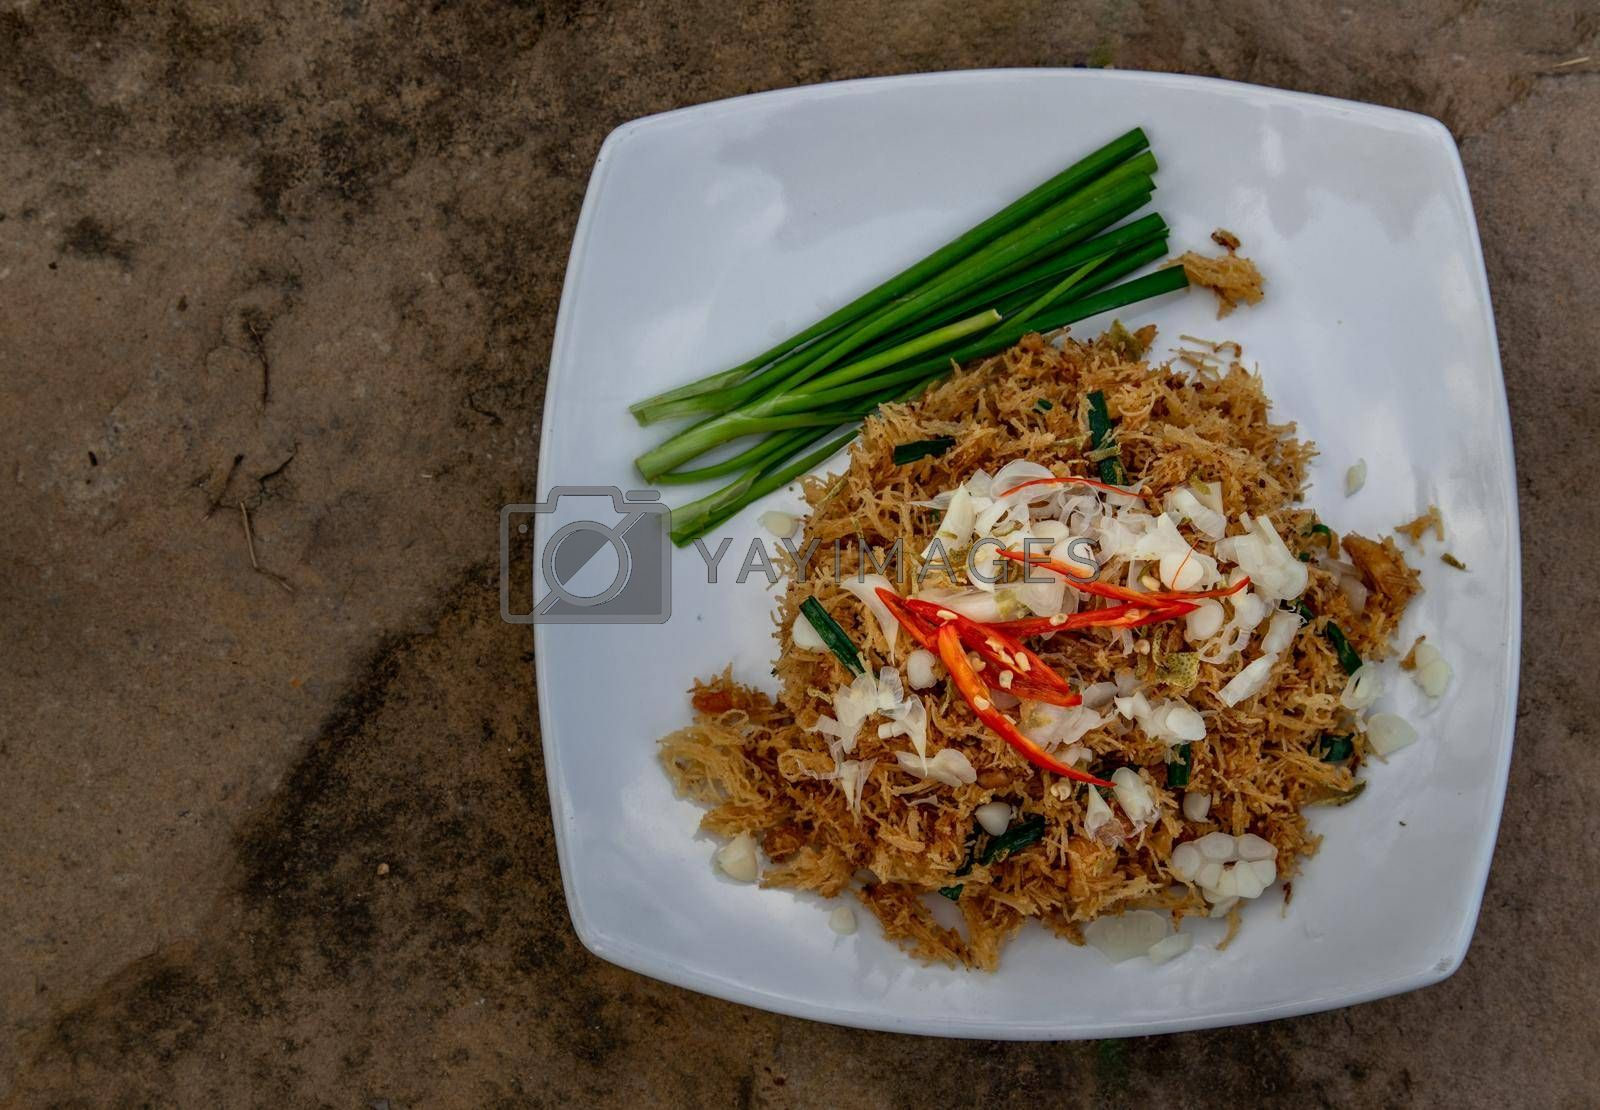 Asian eating food, Mee Grob is an sweet and sour crispy noodles, made from Thai rice noodle with sweet and sour sauce on white plate, Sweet & Sour Crispy Rice Noodles, Top view.